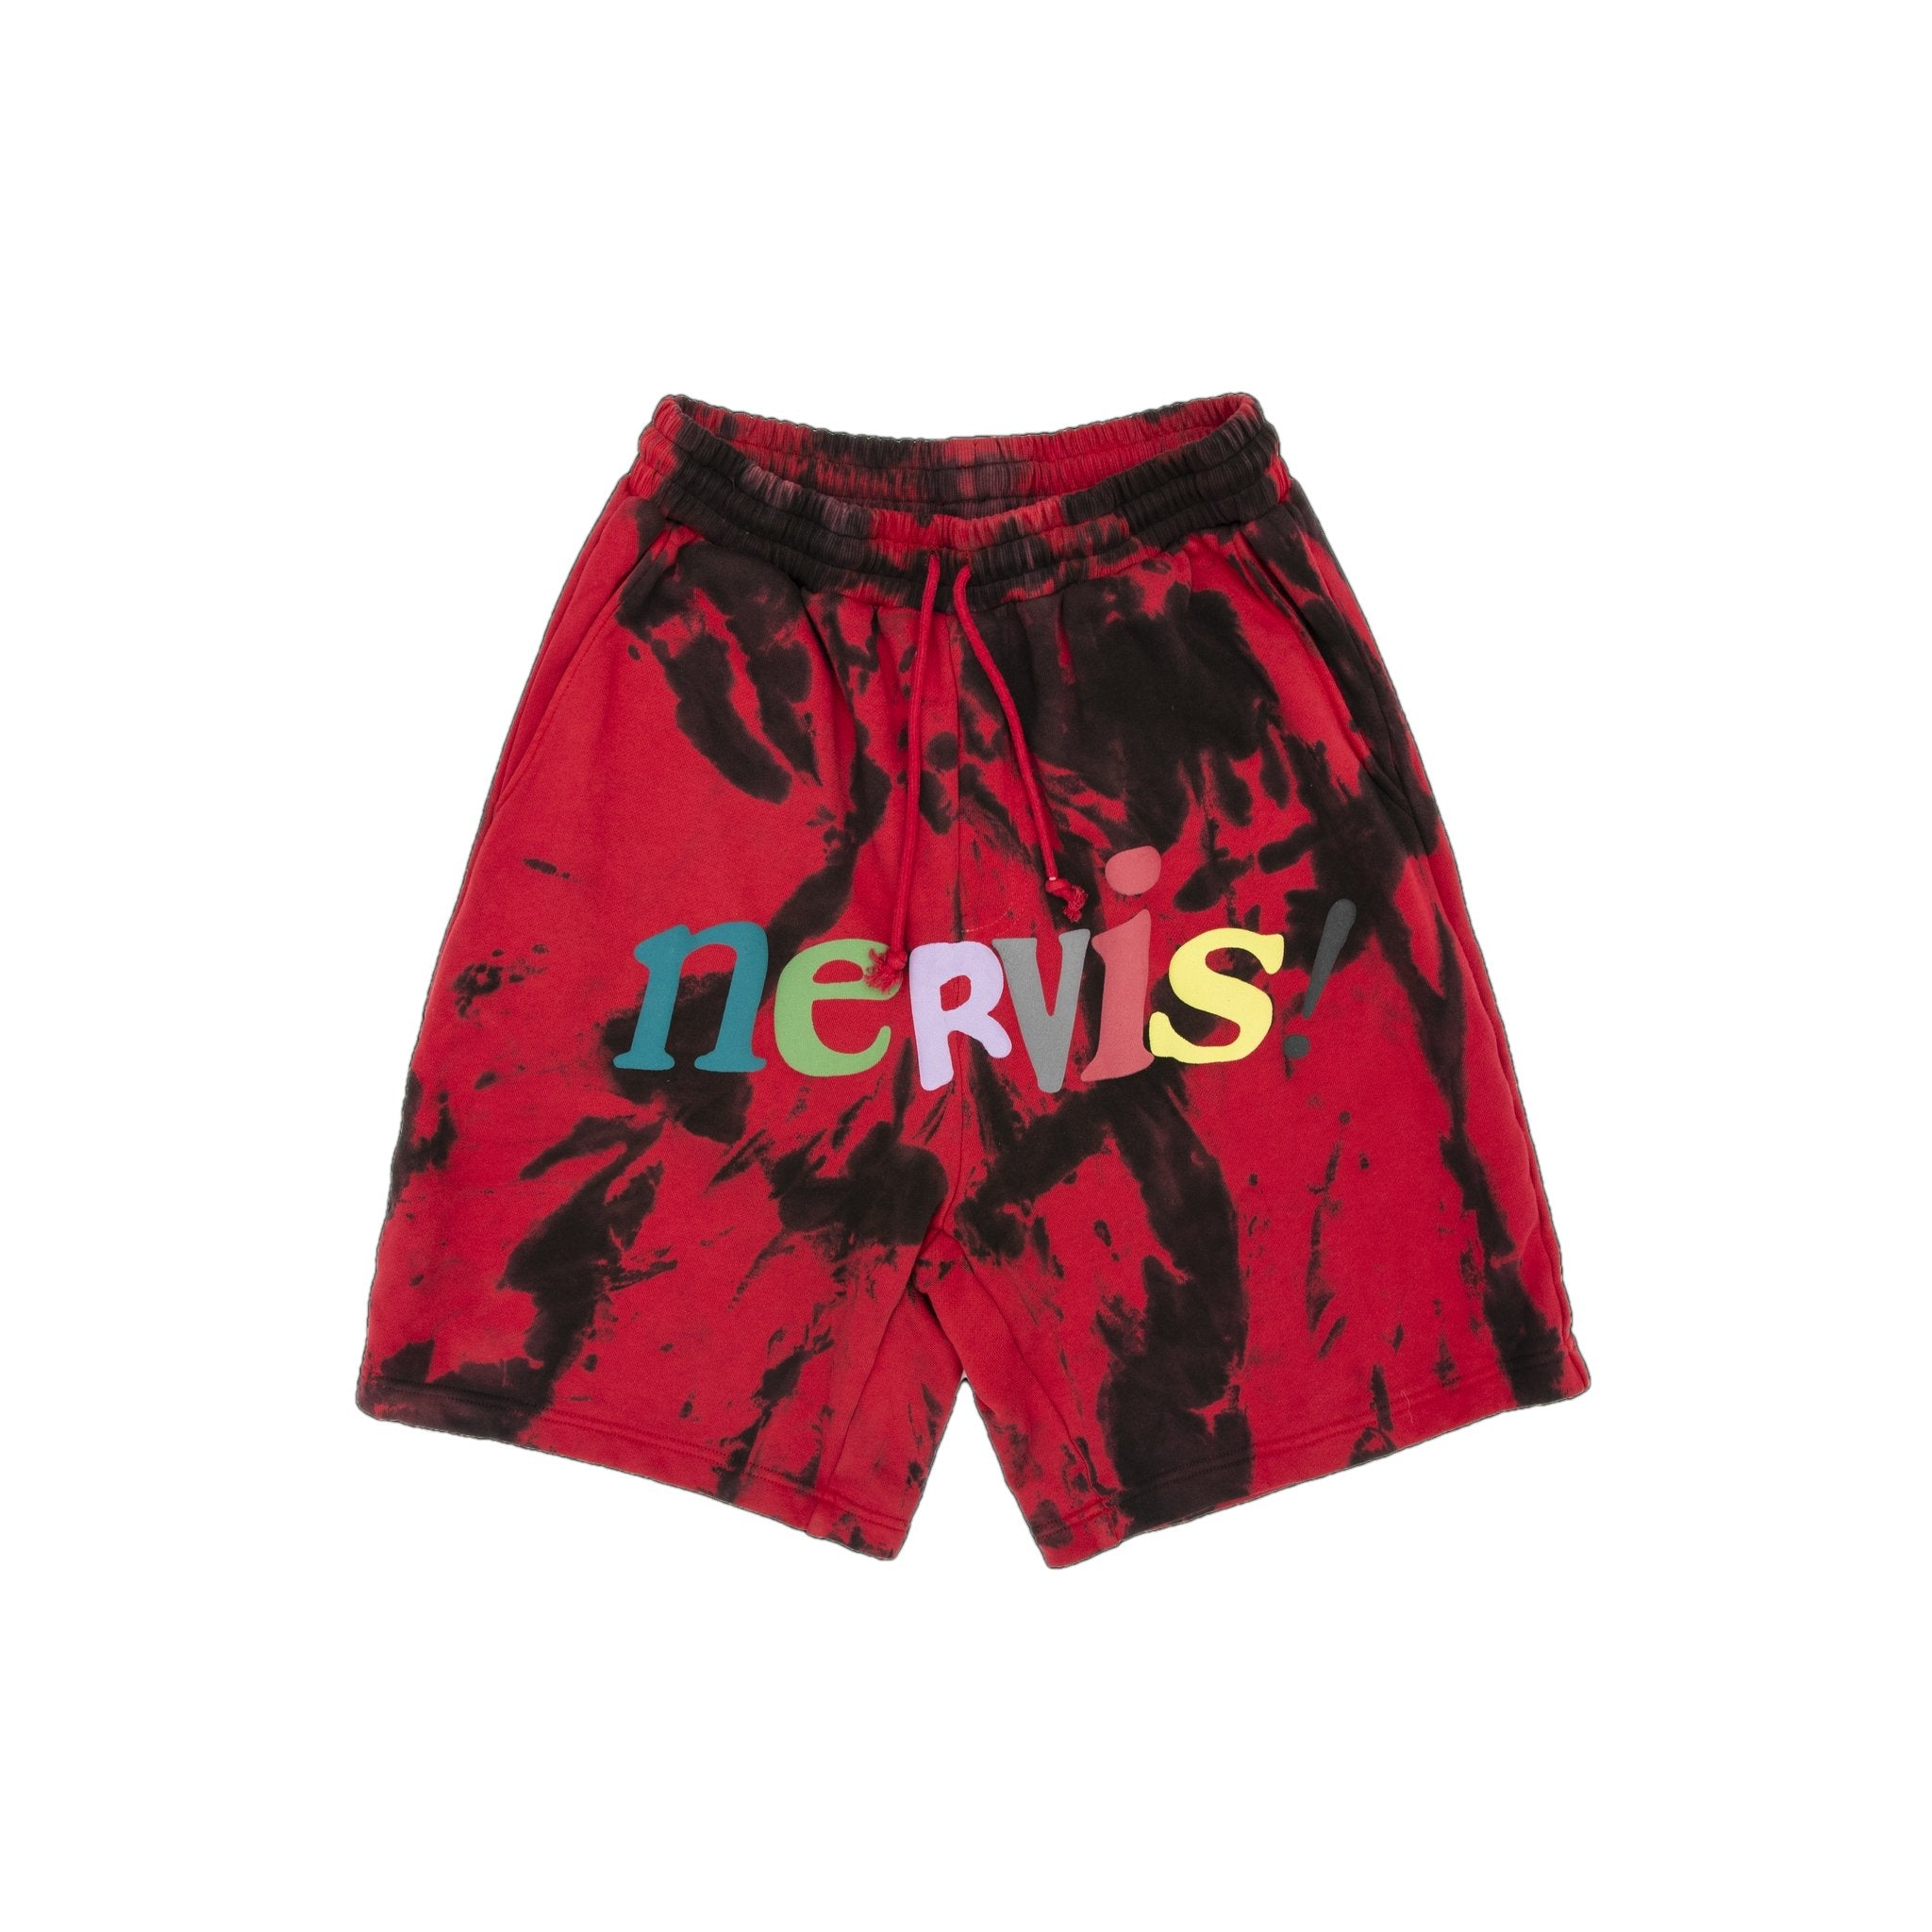 MAYHEM Nervis Red Tie-Dye Puff-Print Short | MADA IN CHINA